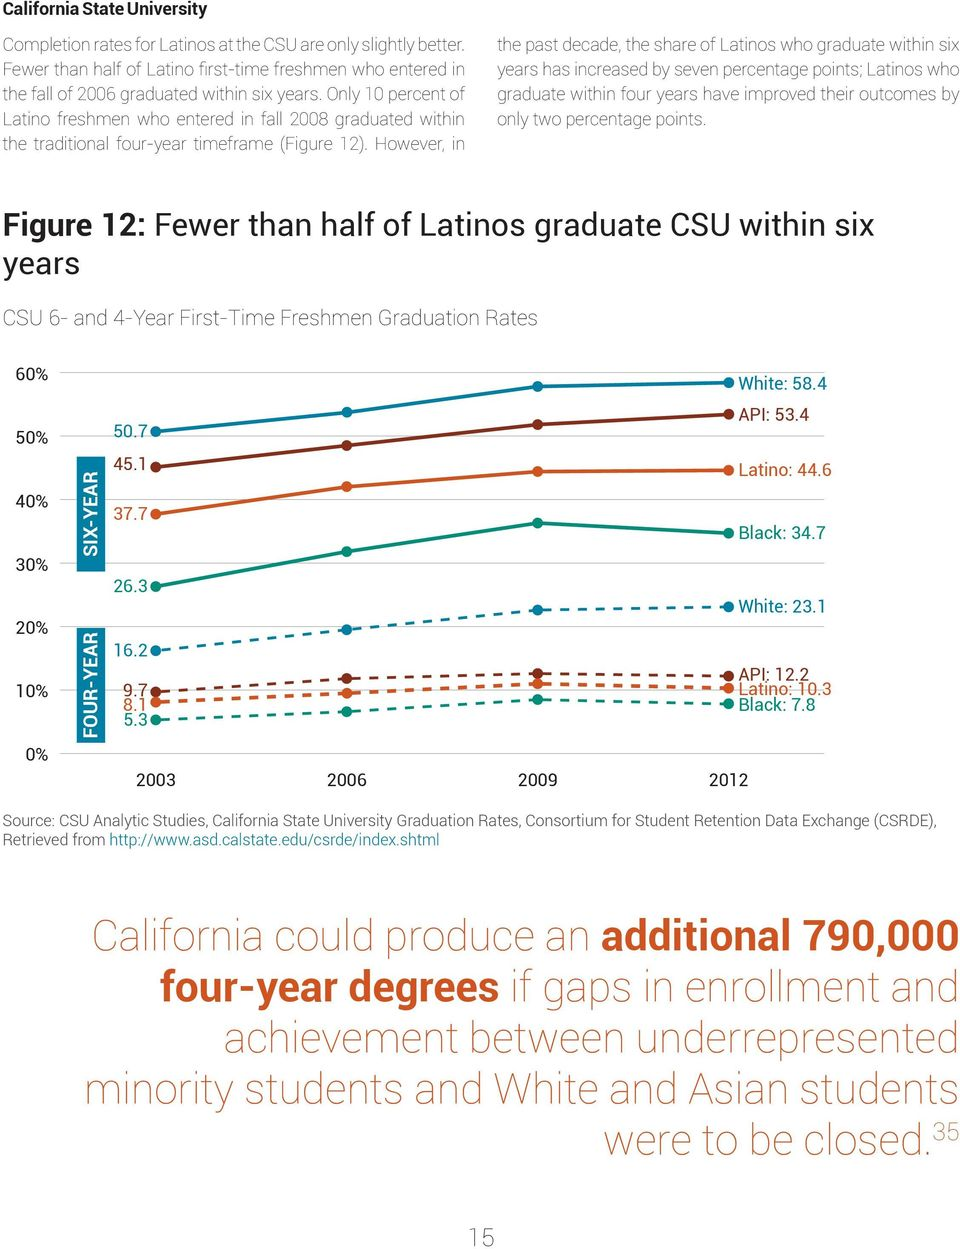 However, in the past decade, the share of Latinos who graduate within six years has increased by seven percentage points; Latinos who graduate within four years have improved their outcomes by only